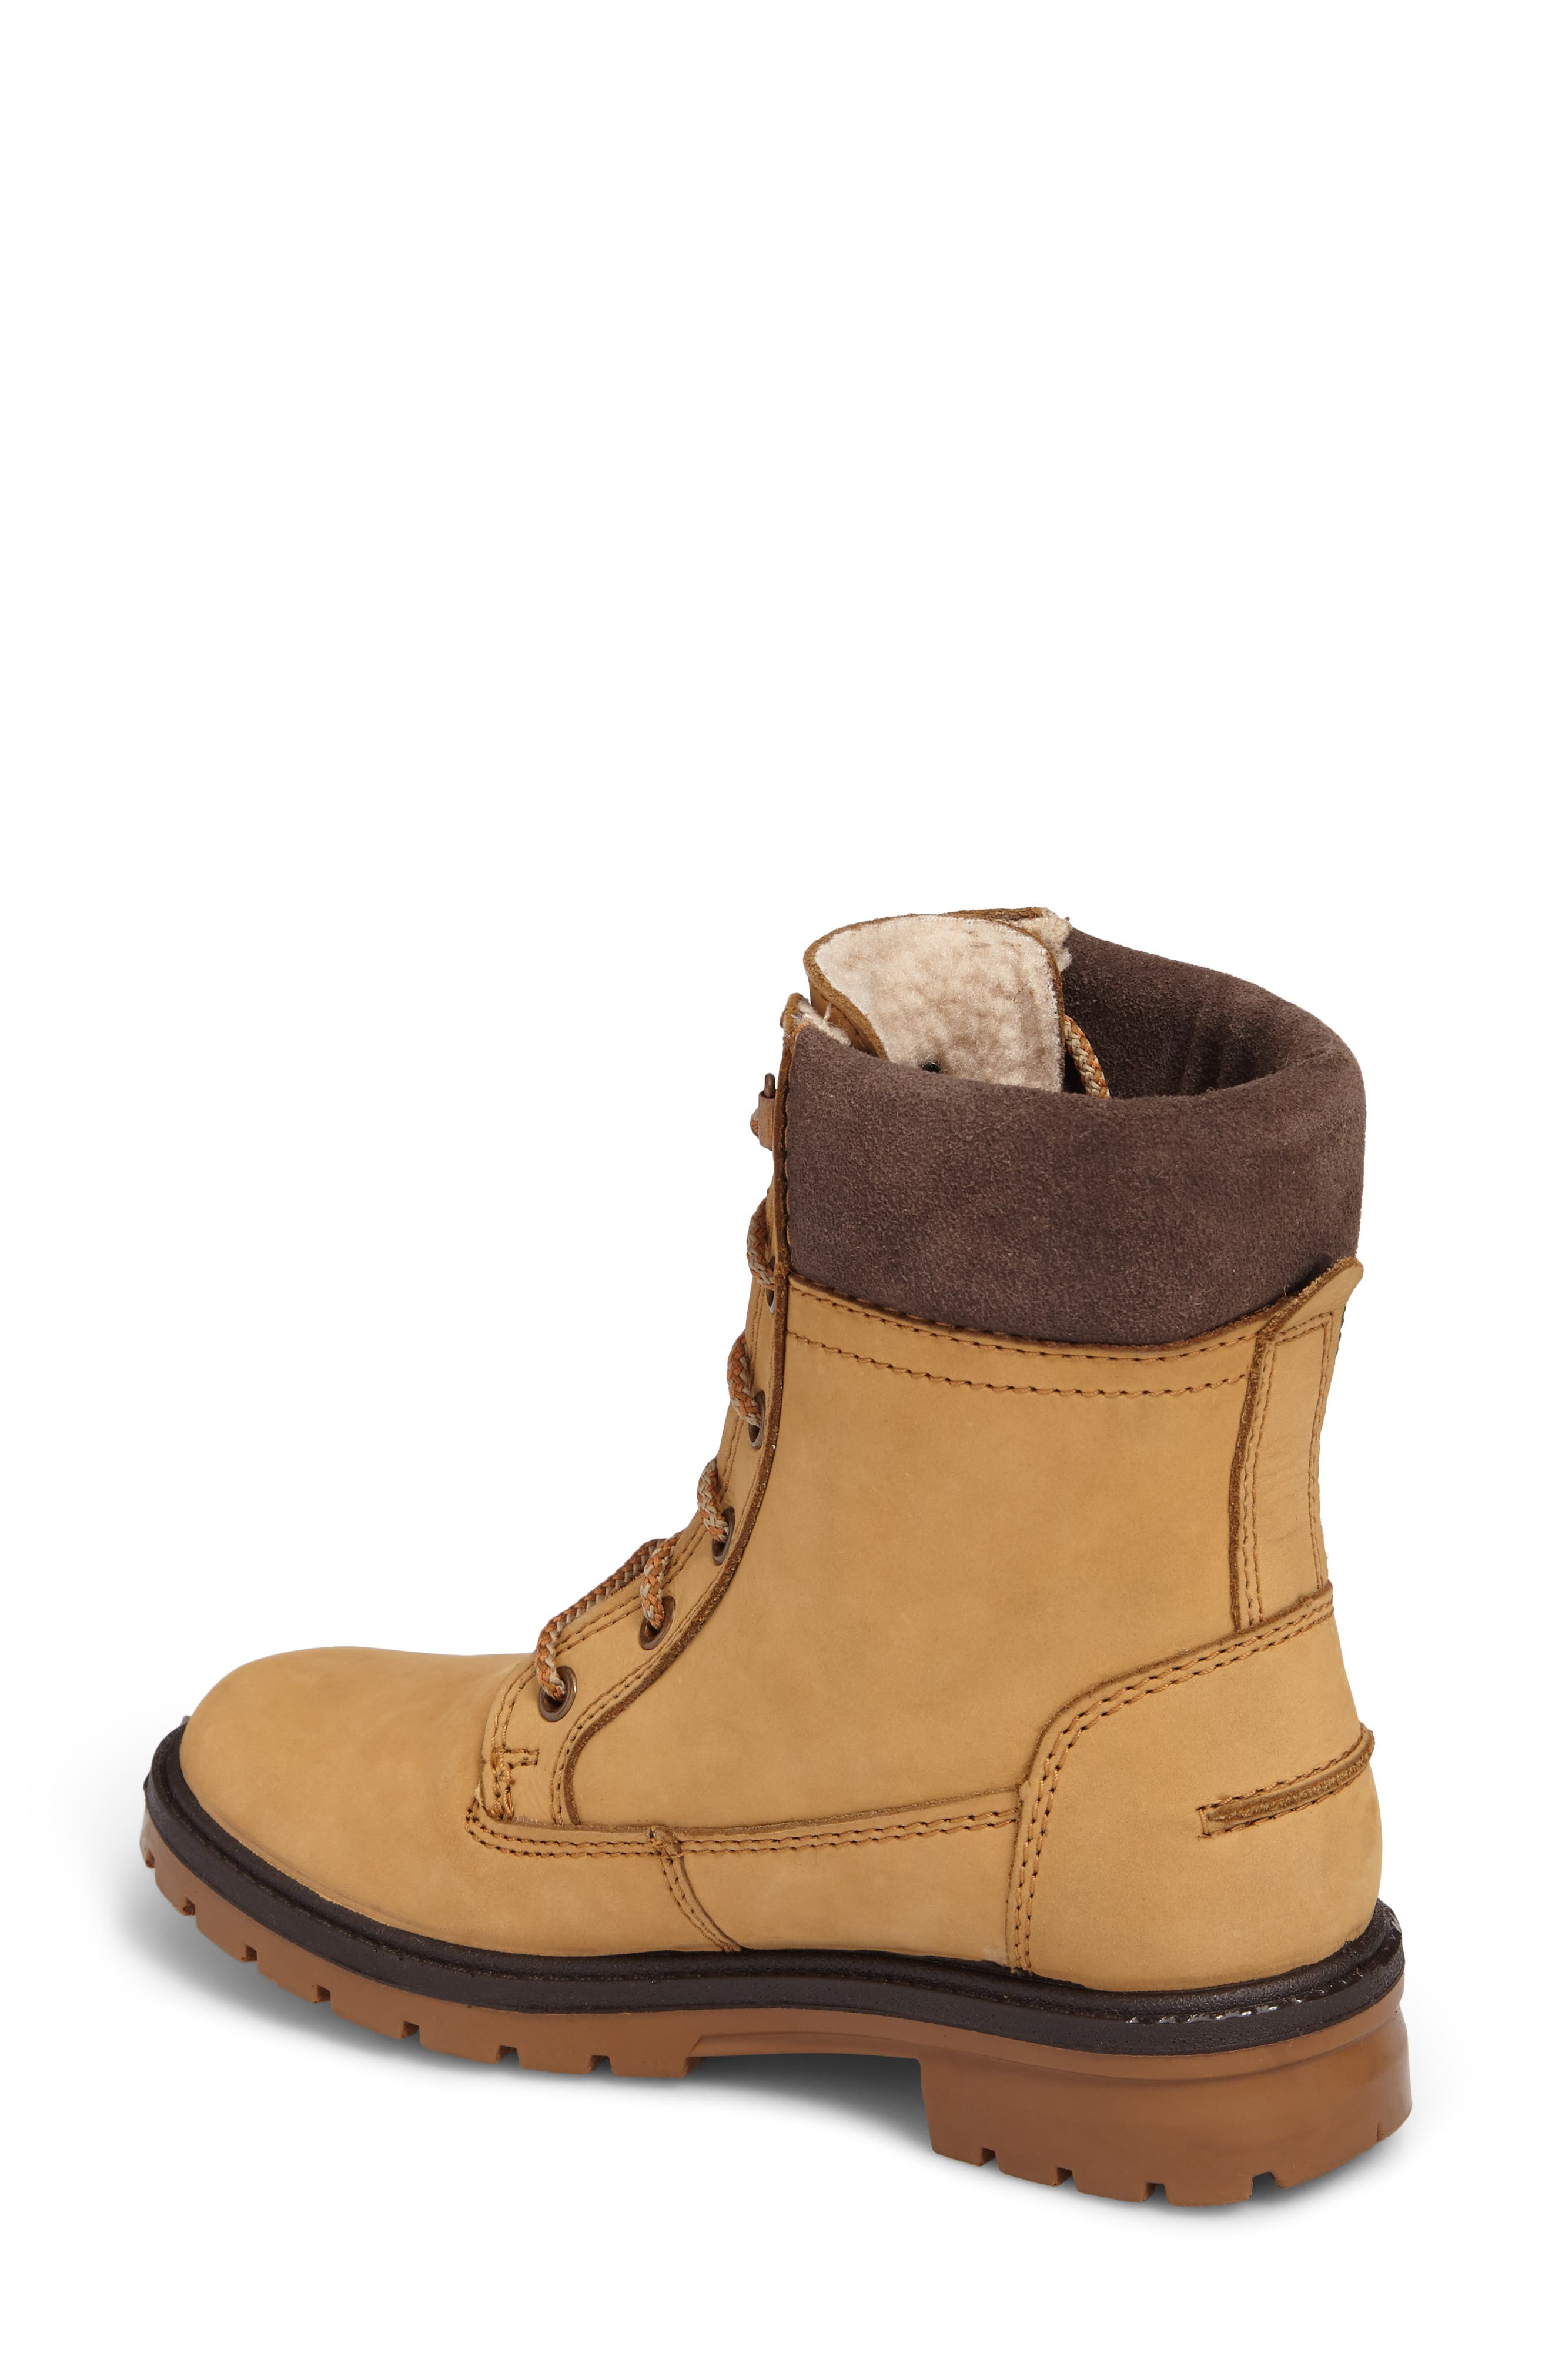 Rogue 5 Waterproof Boot,                             Alternate thumbnail 2, color,                             Honey Leather